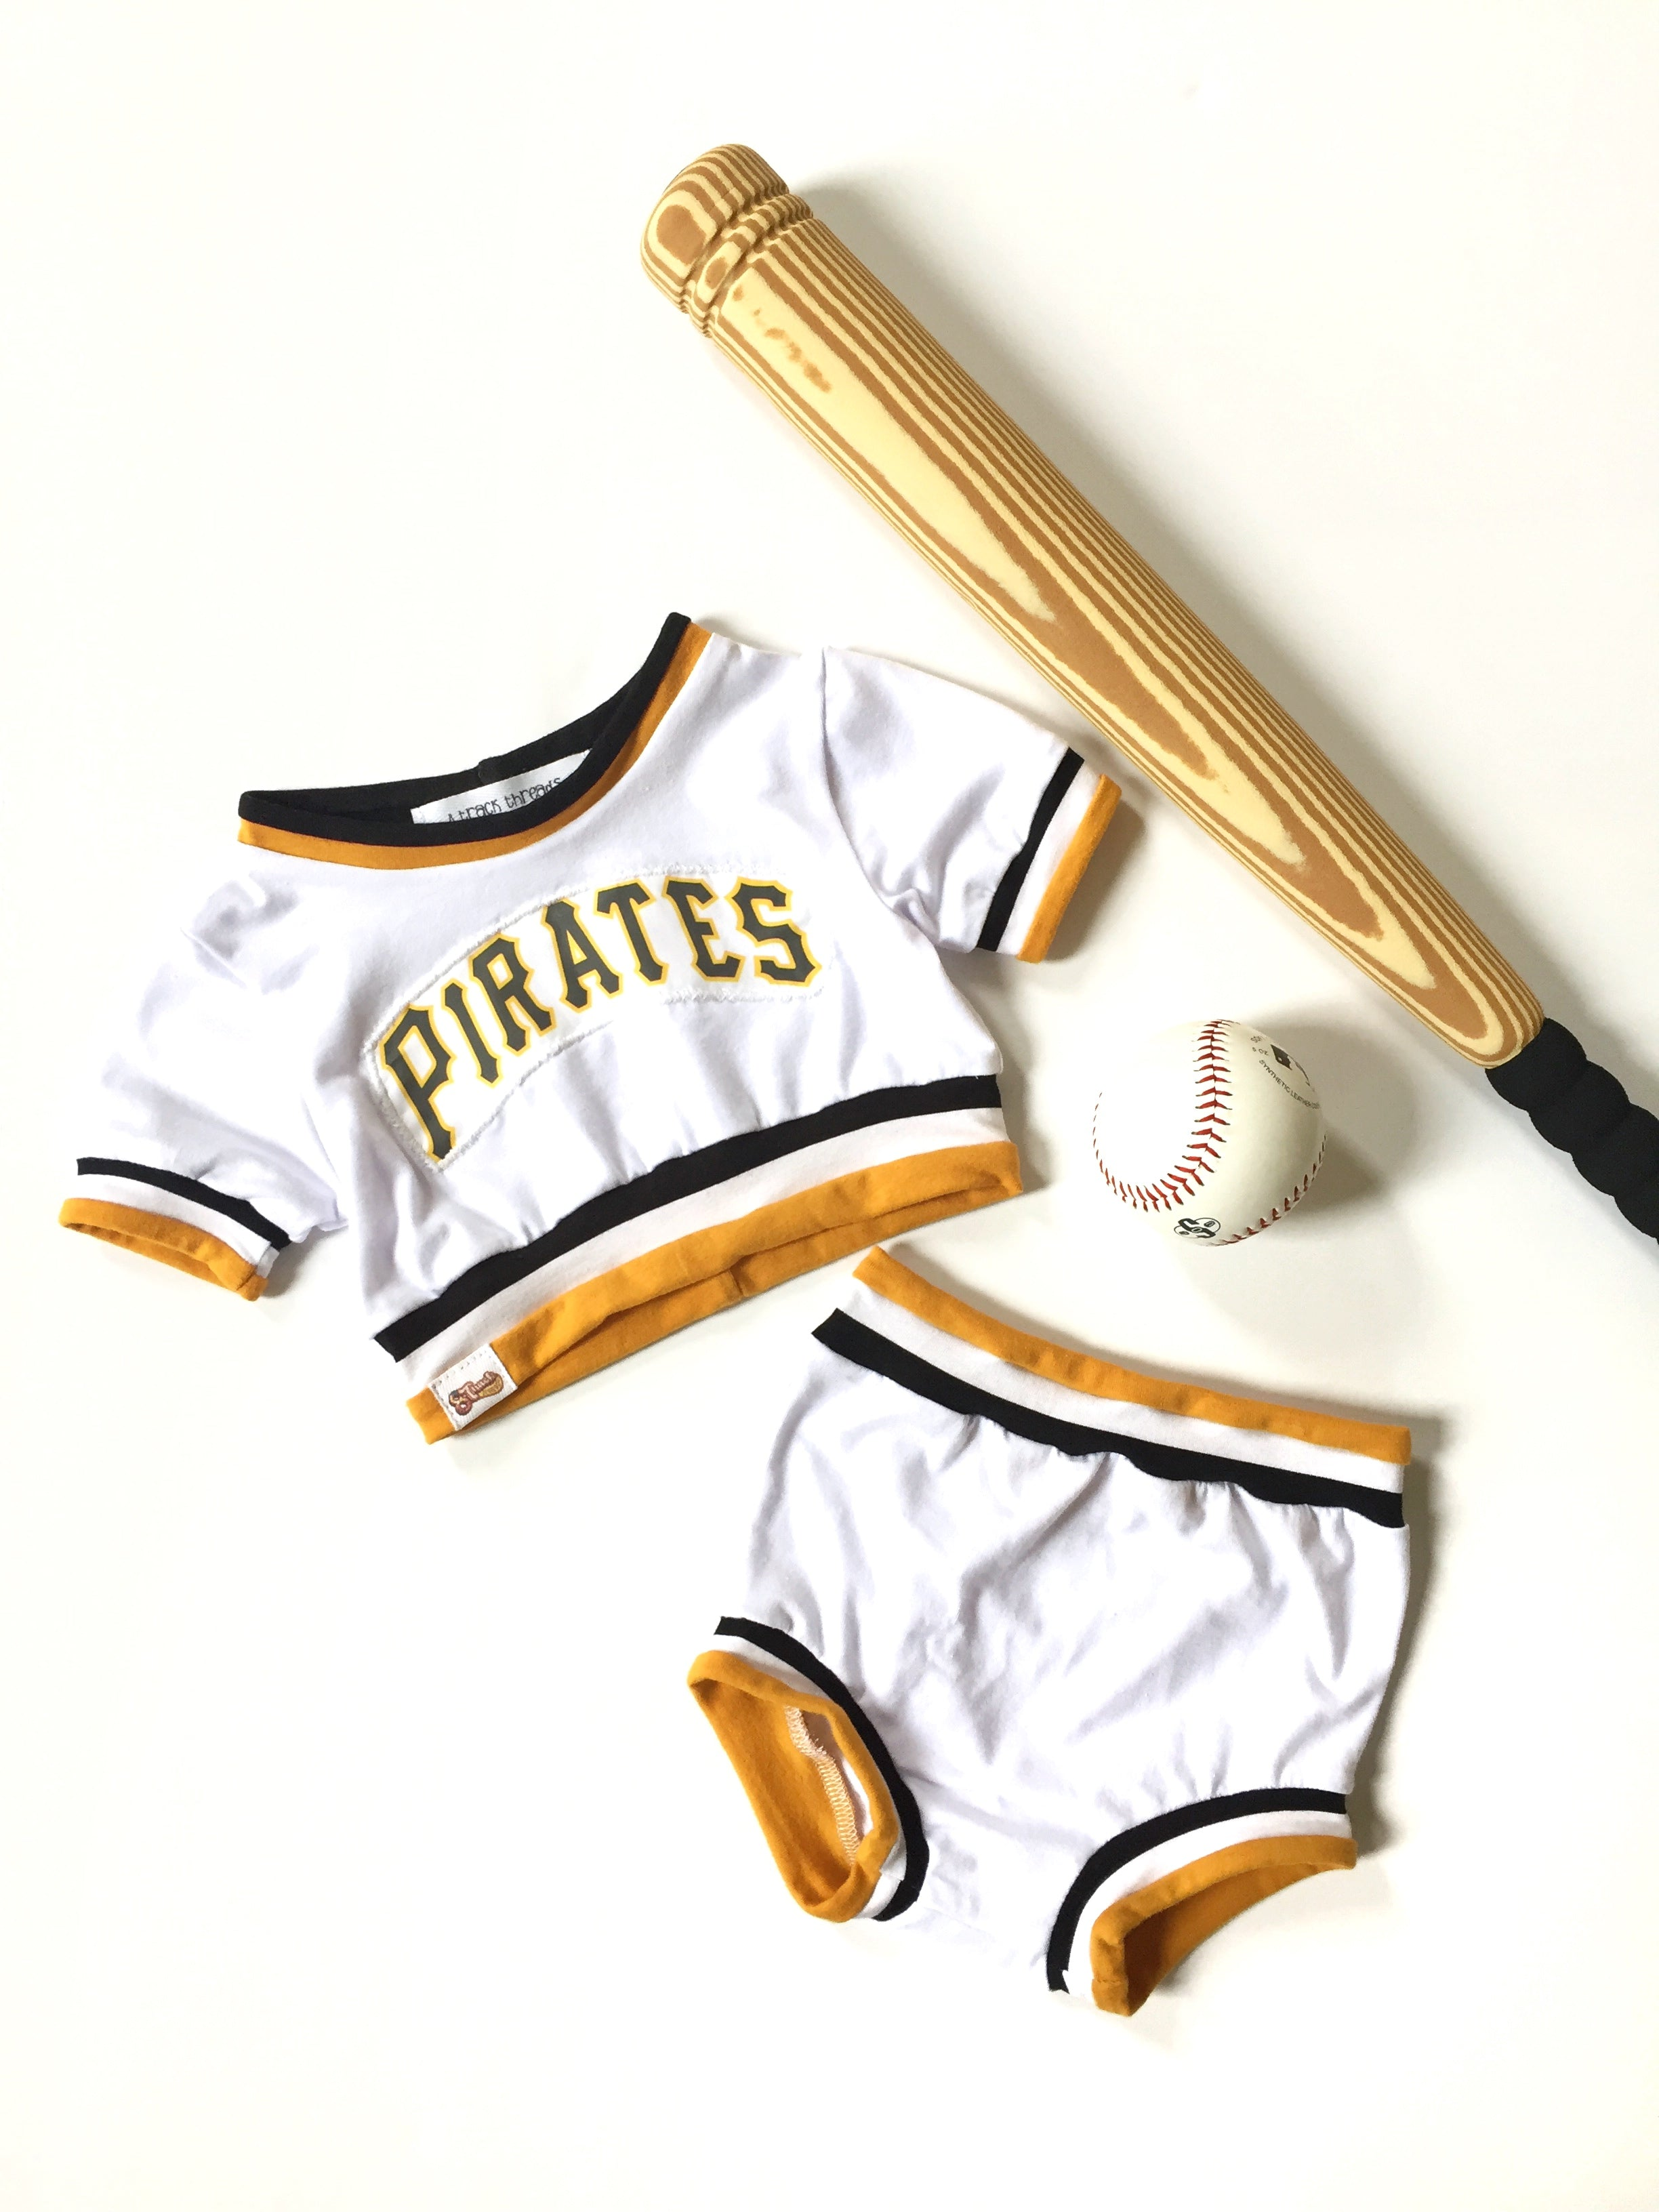 PITTSBURGH PIRATES Retro Baseball Uniform Bummies